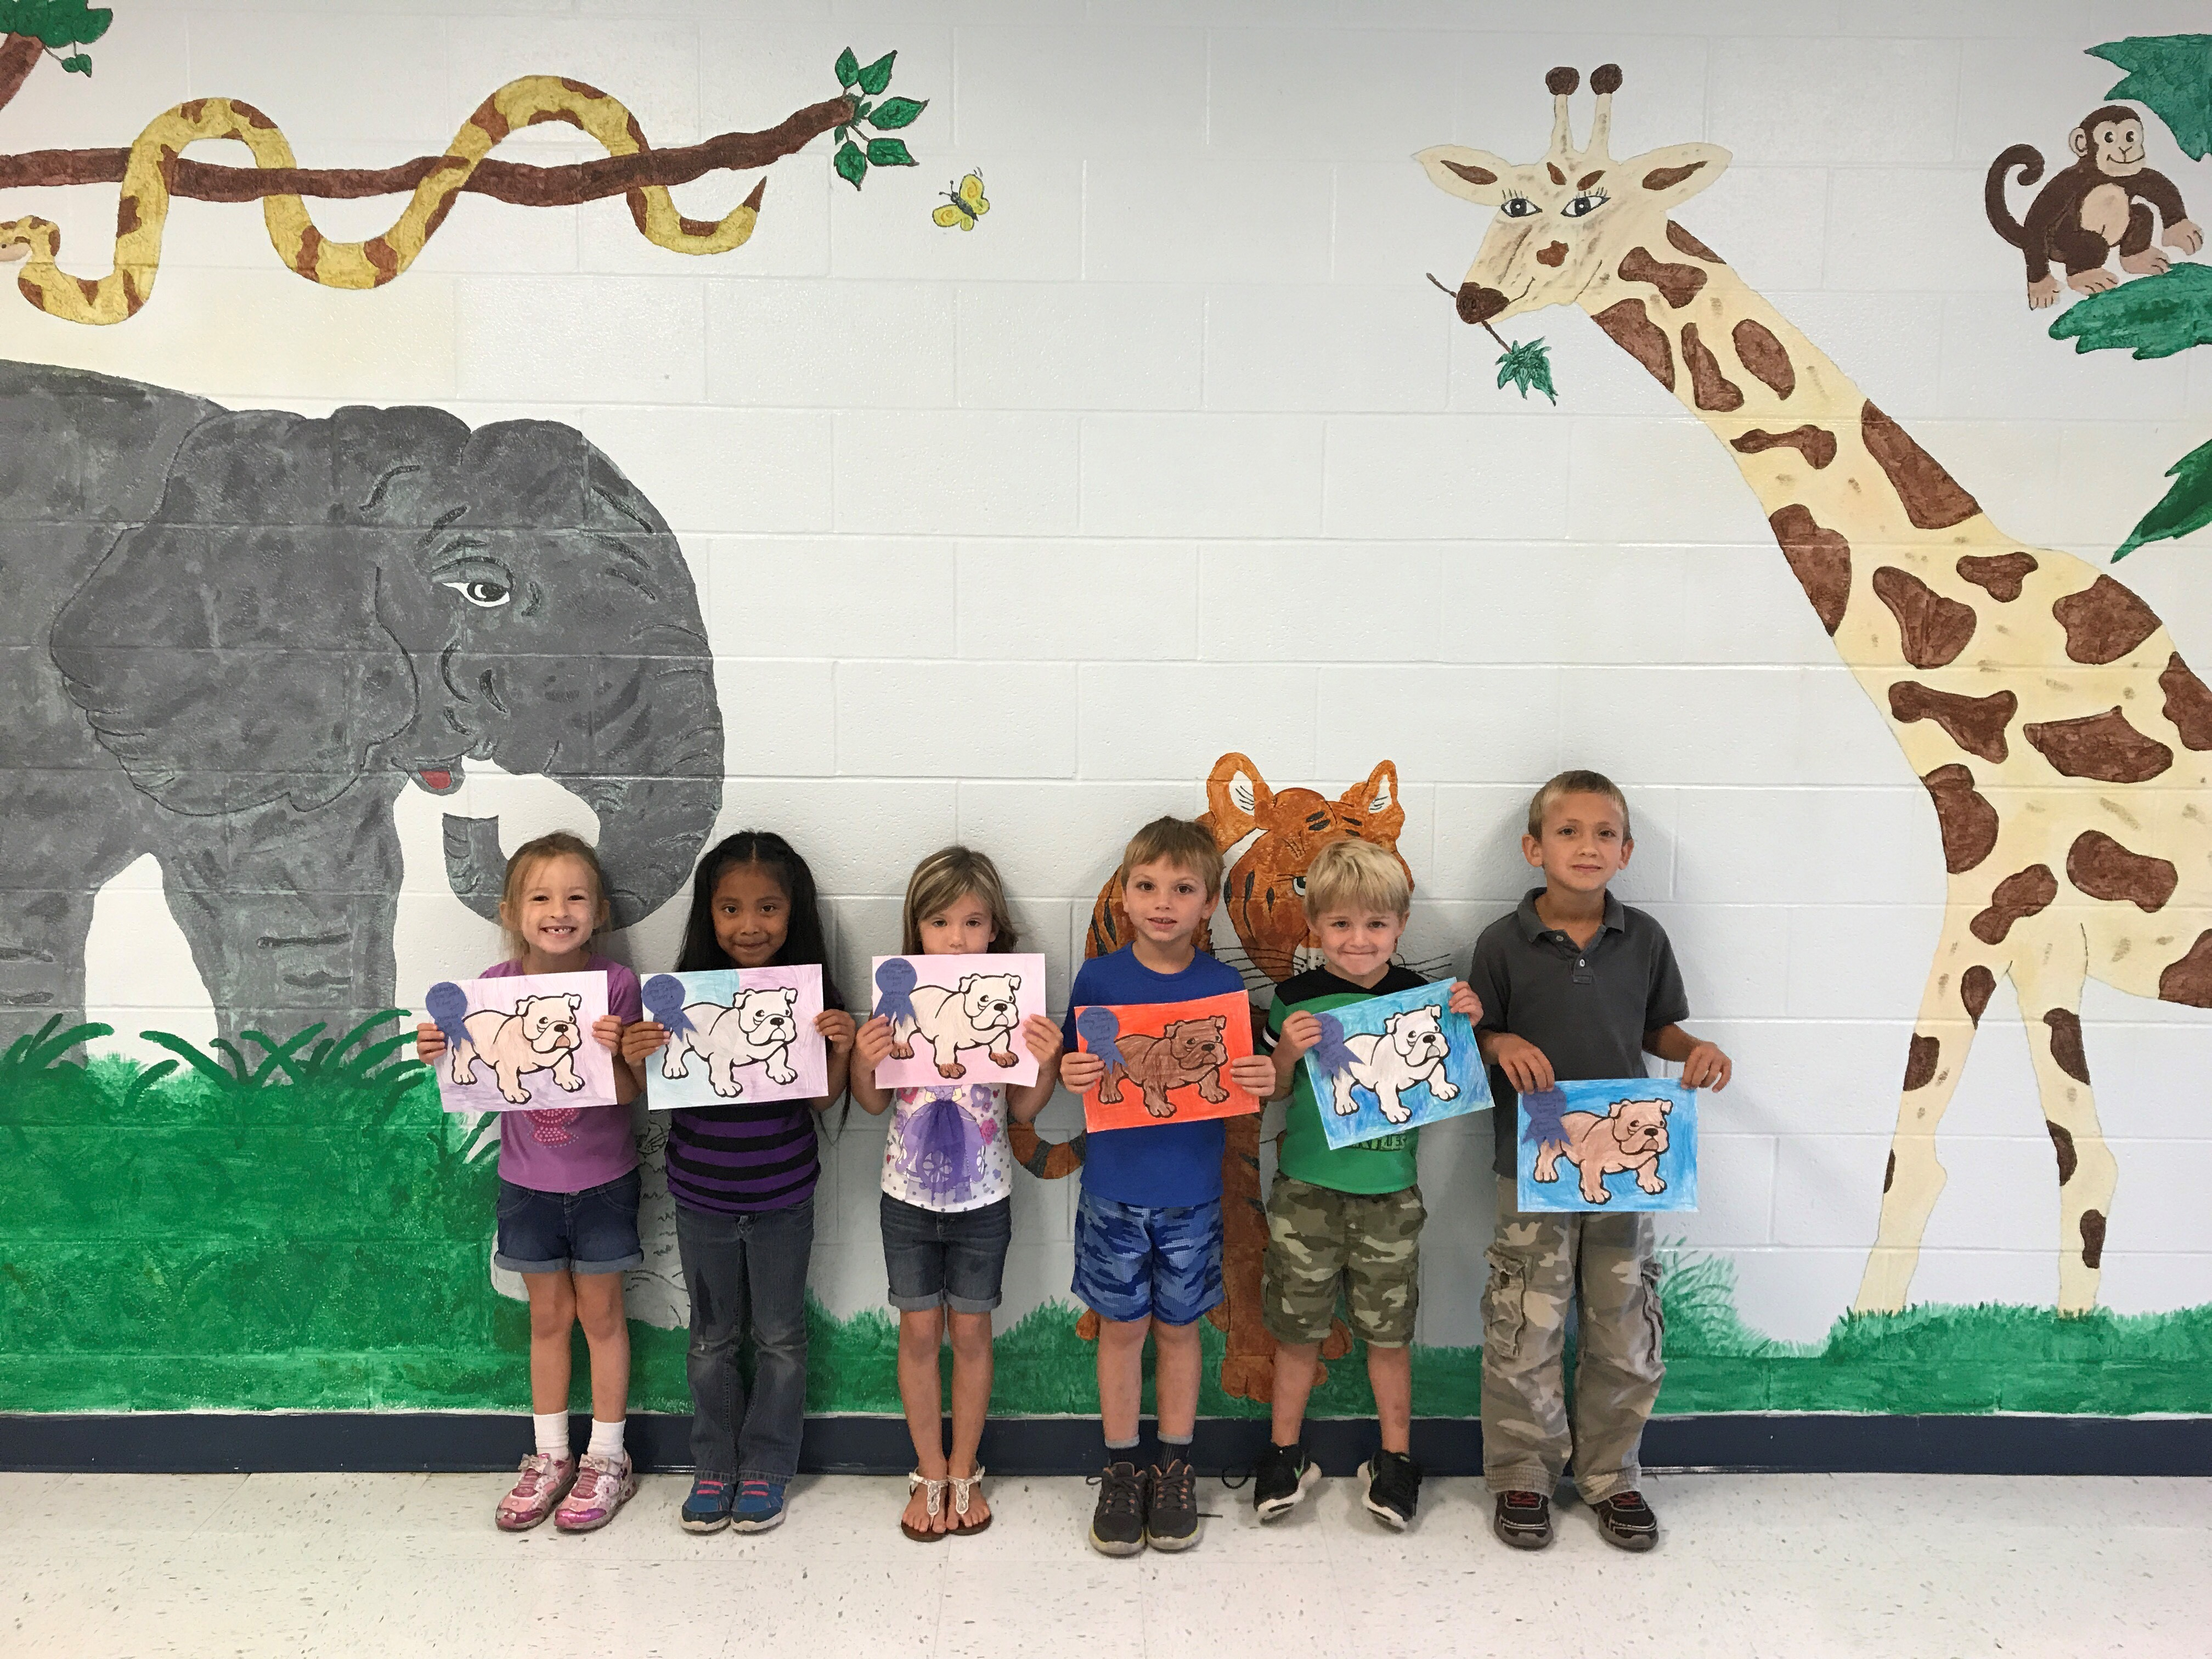 Pictured here are the winners of the Bulldog Coloring Contest from Mrs. Cindy Wallace's kindergarten related arts classes at the Clinton County Early Childhood Center.